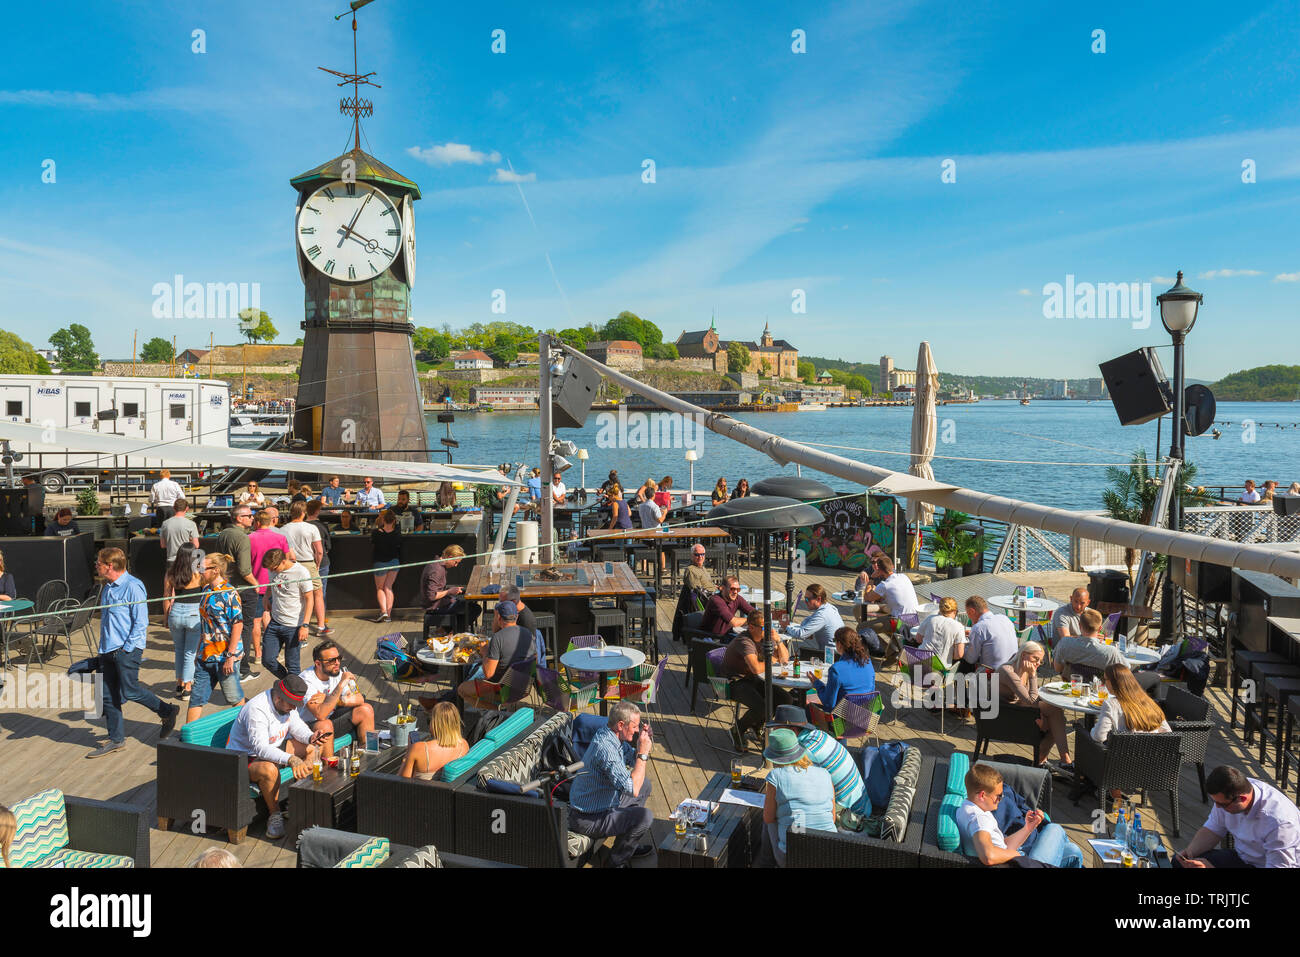 Oslo Aker Brygge, view of people relaxing on a summer afternoon on a terrace bar along the Stranden in the Aker Brygge harbour area of Oslo. Stock Photo